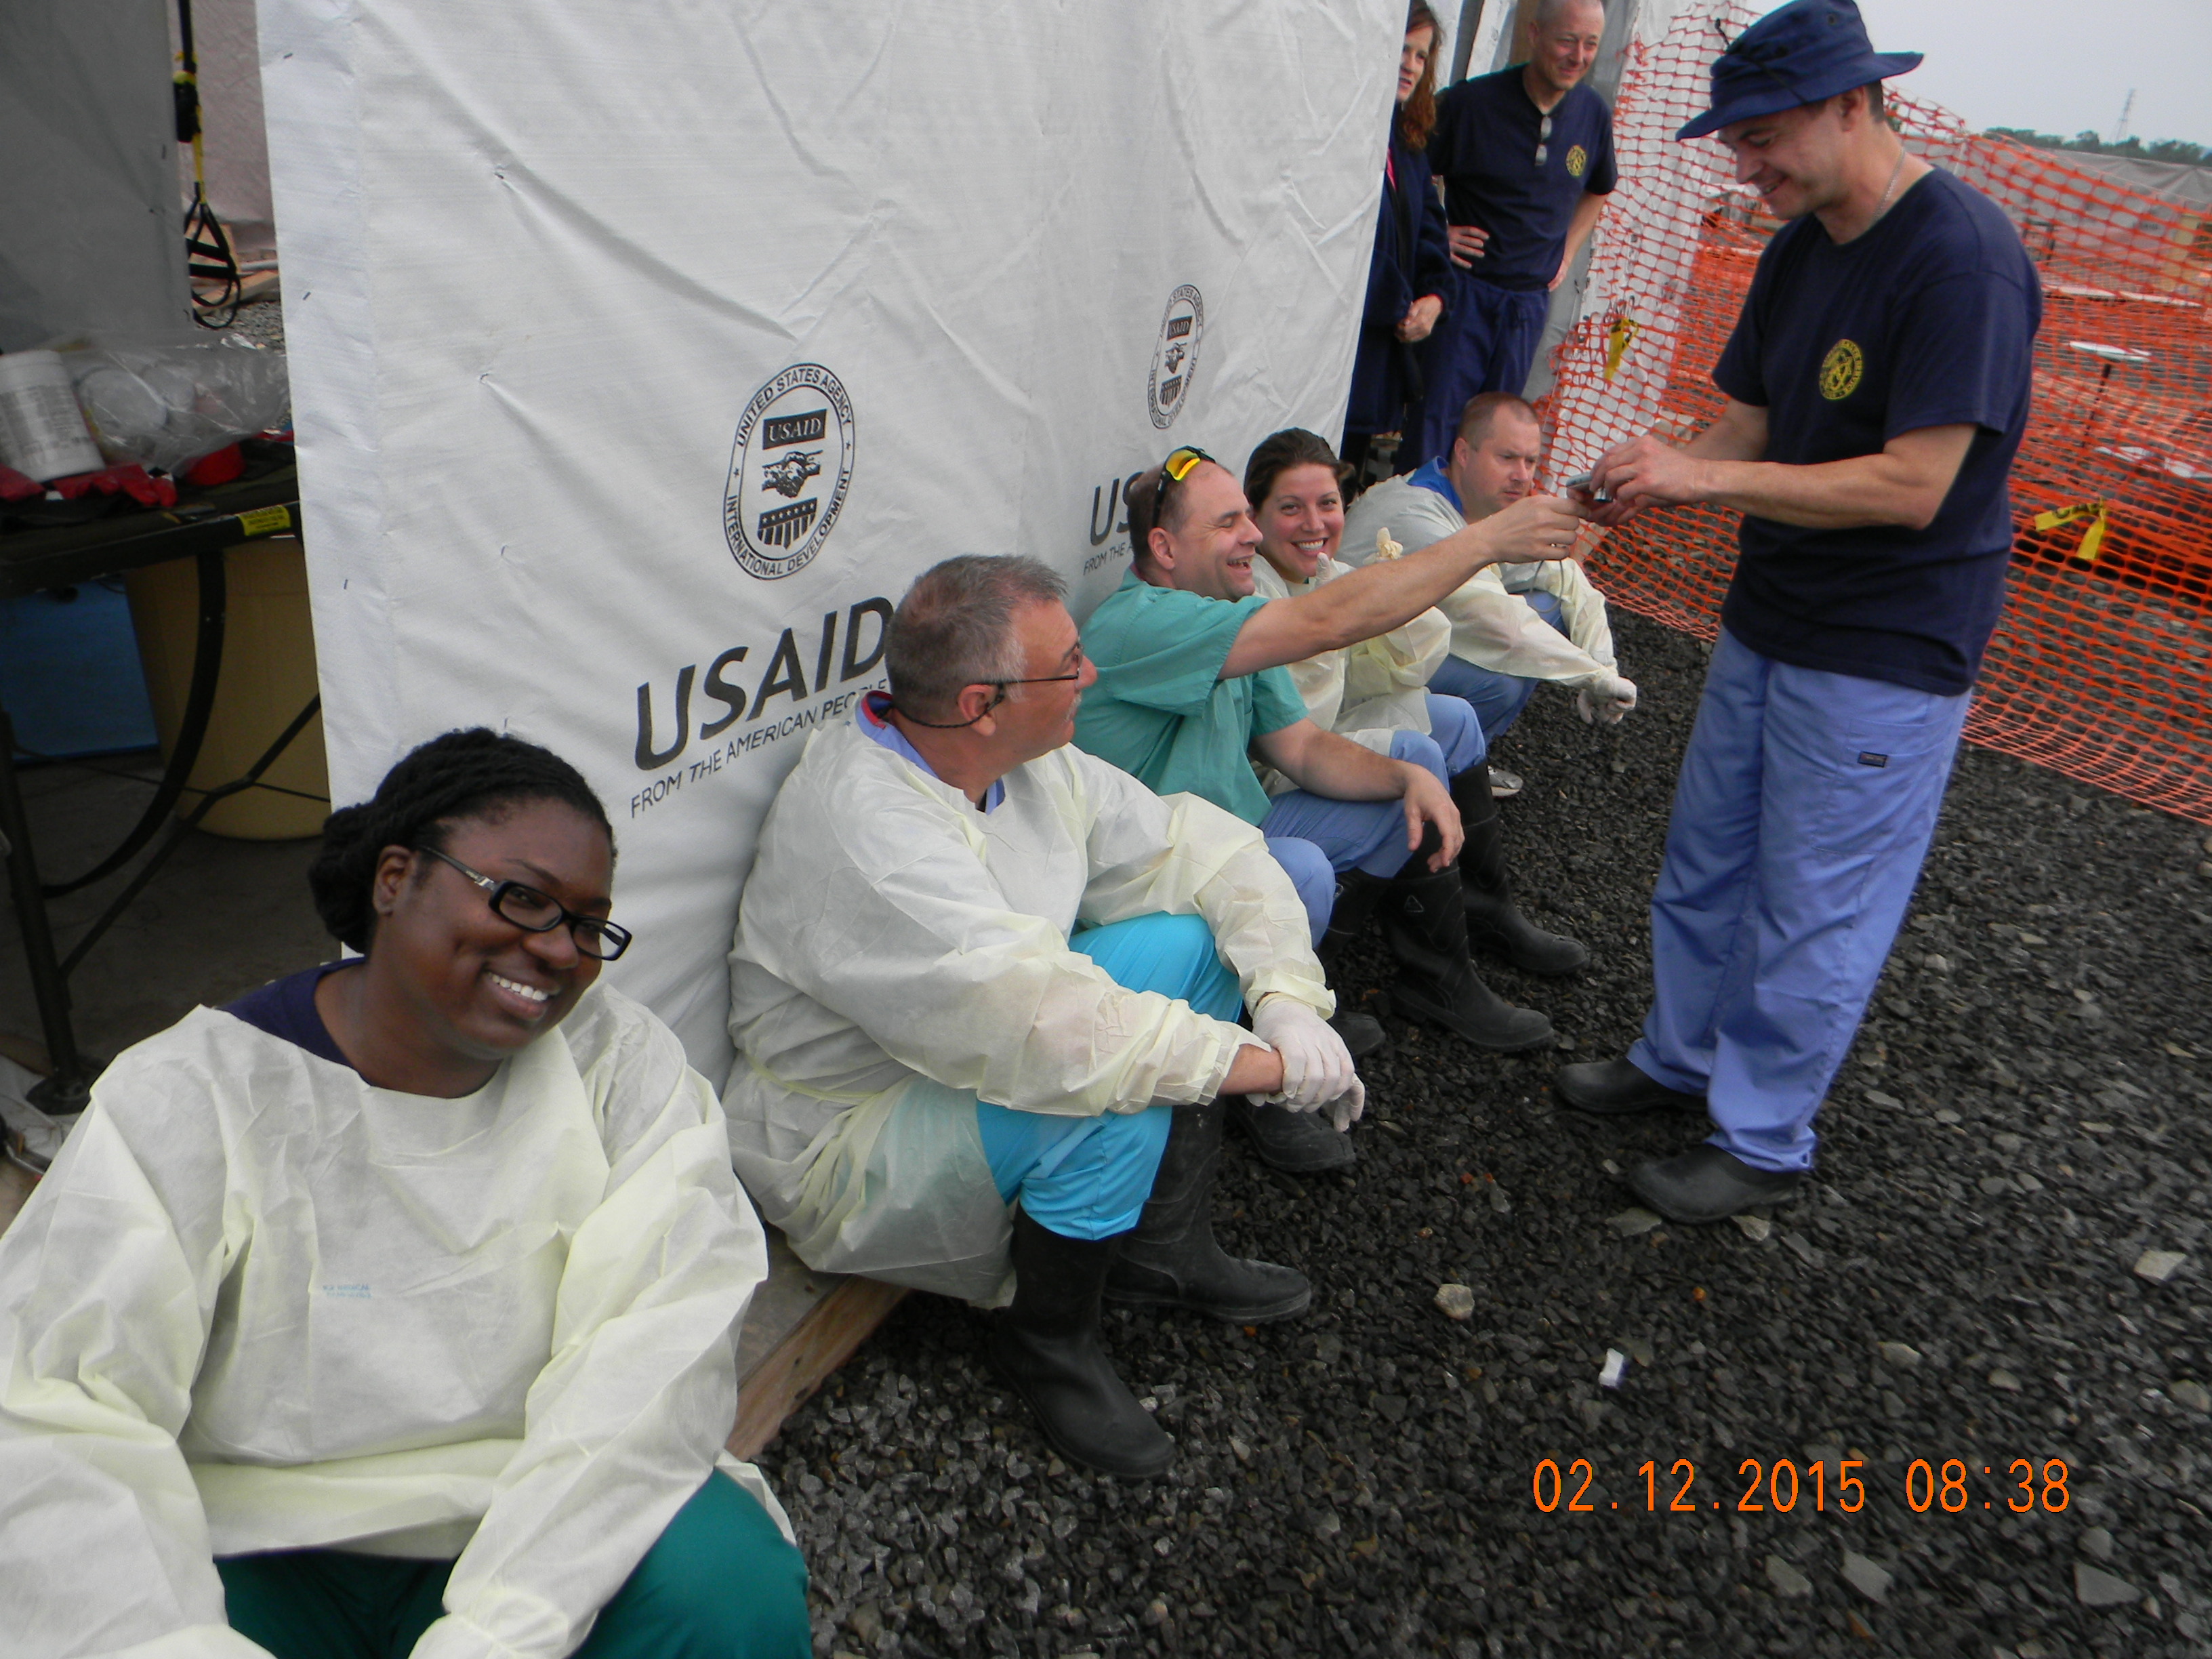 Tuskegee Veterinarians on the Frontline fighting Ebola